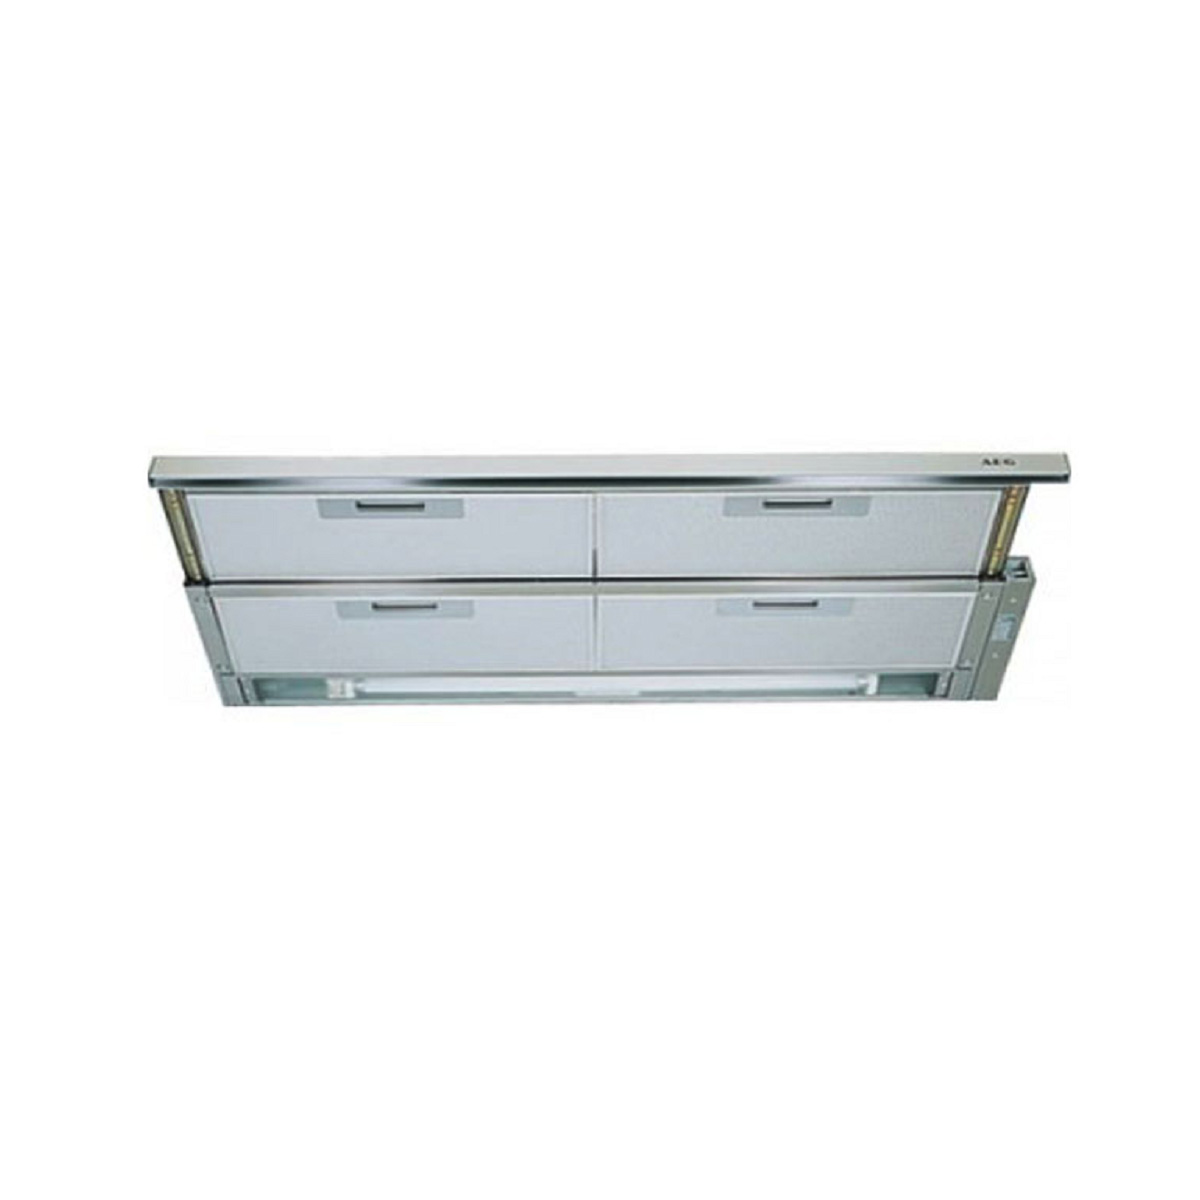 AEG Slide Out Rangehood 7509DM